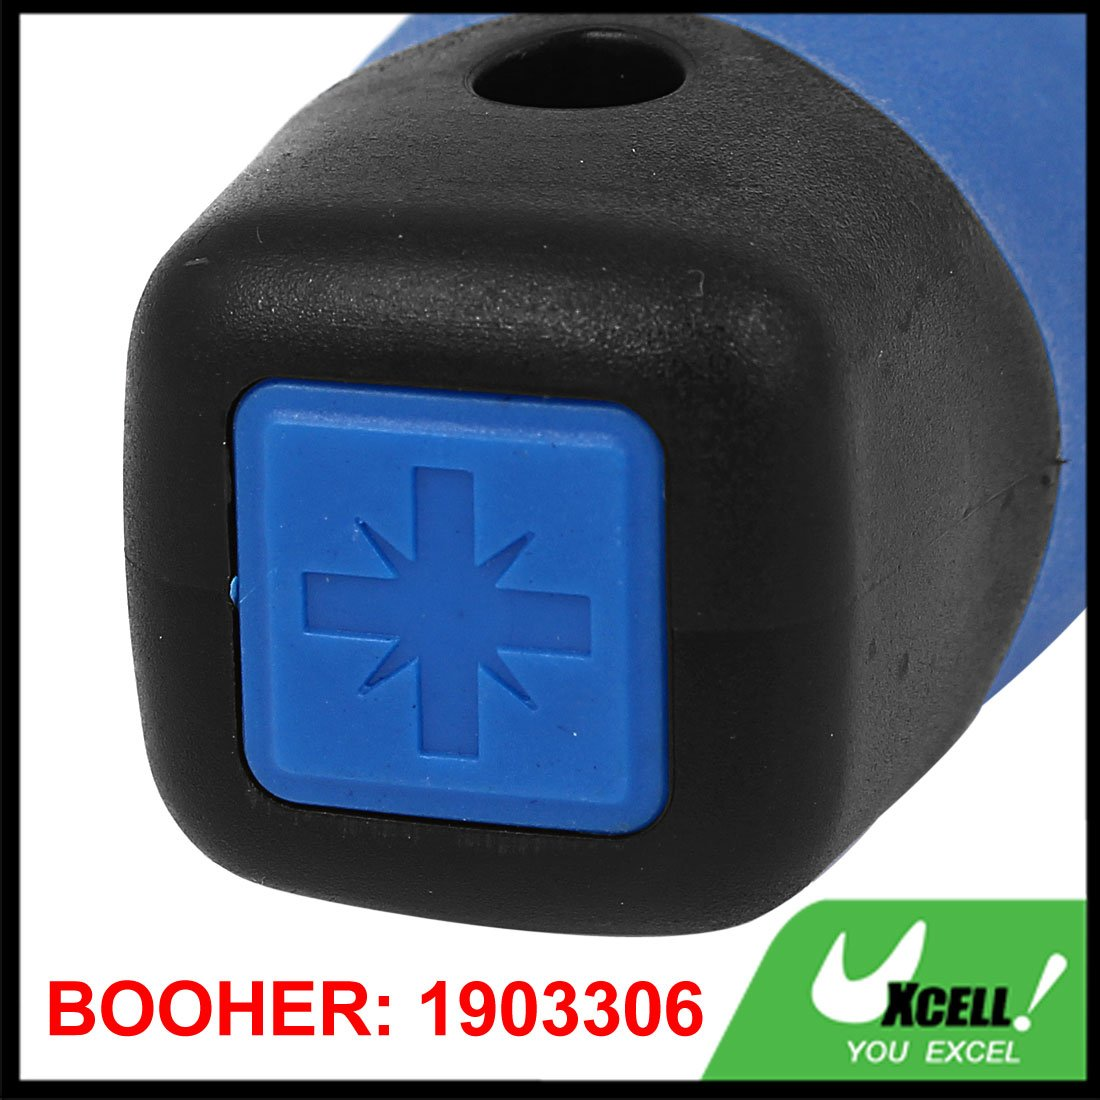 sourcing map BOOHER Authorized 100mm Bar Length R2 Square Recess Screwdriver Hand Tool